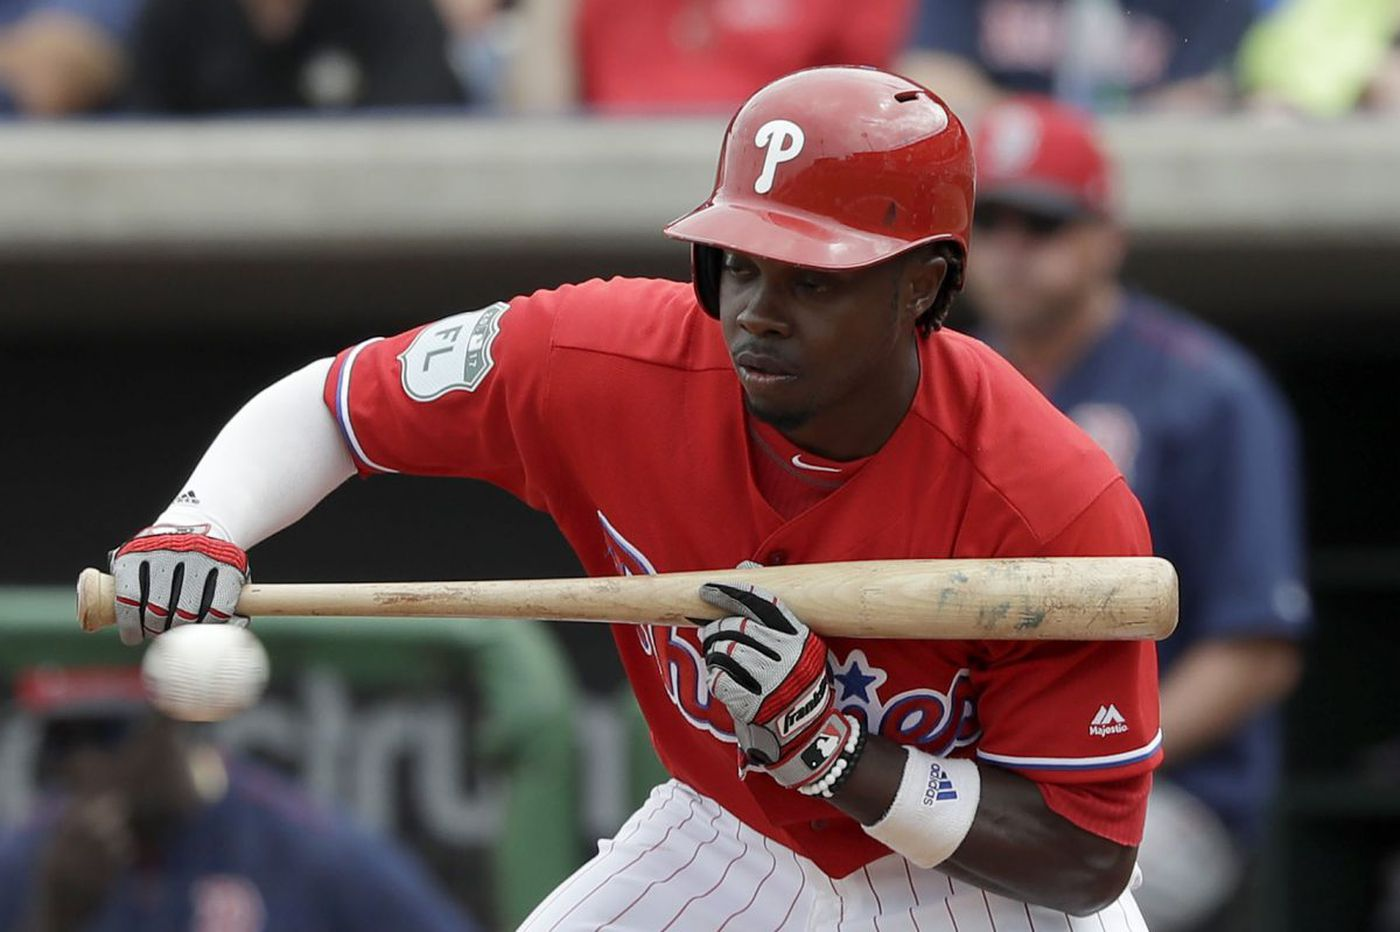 Roman Quinn has a real chance to make the Phillies